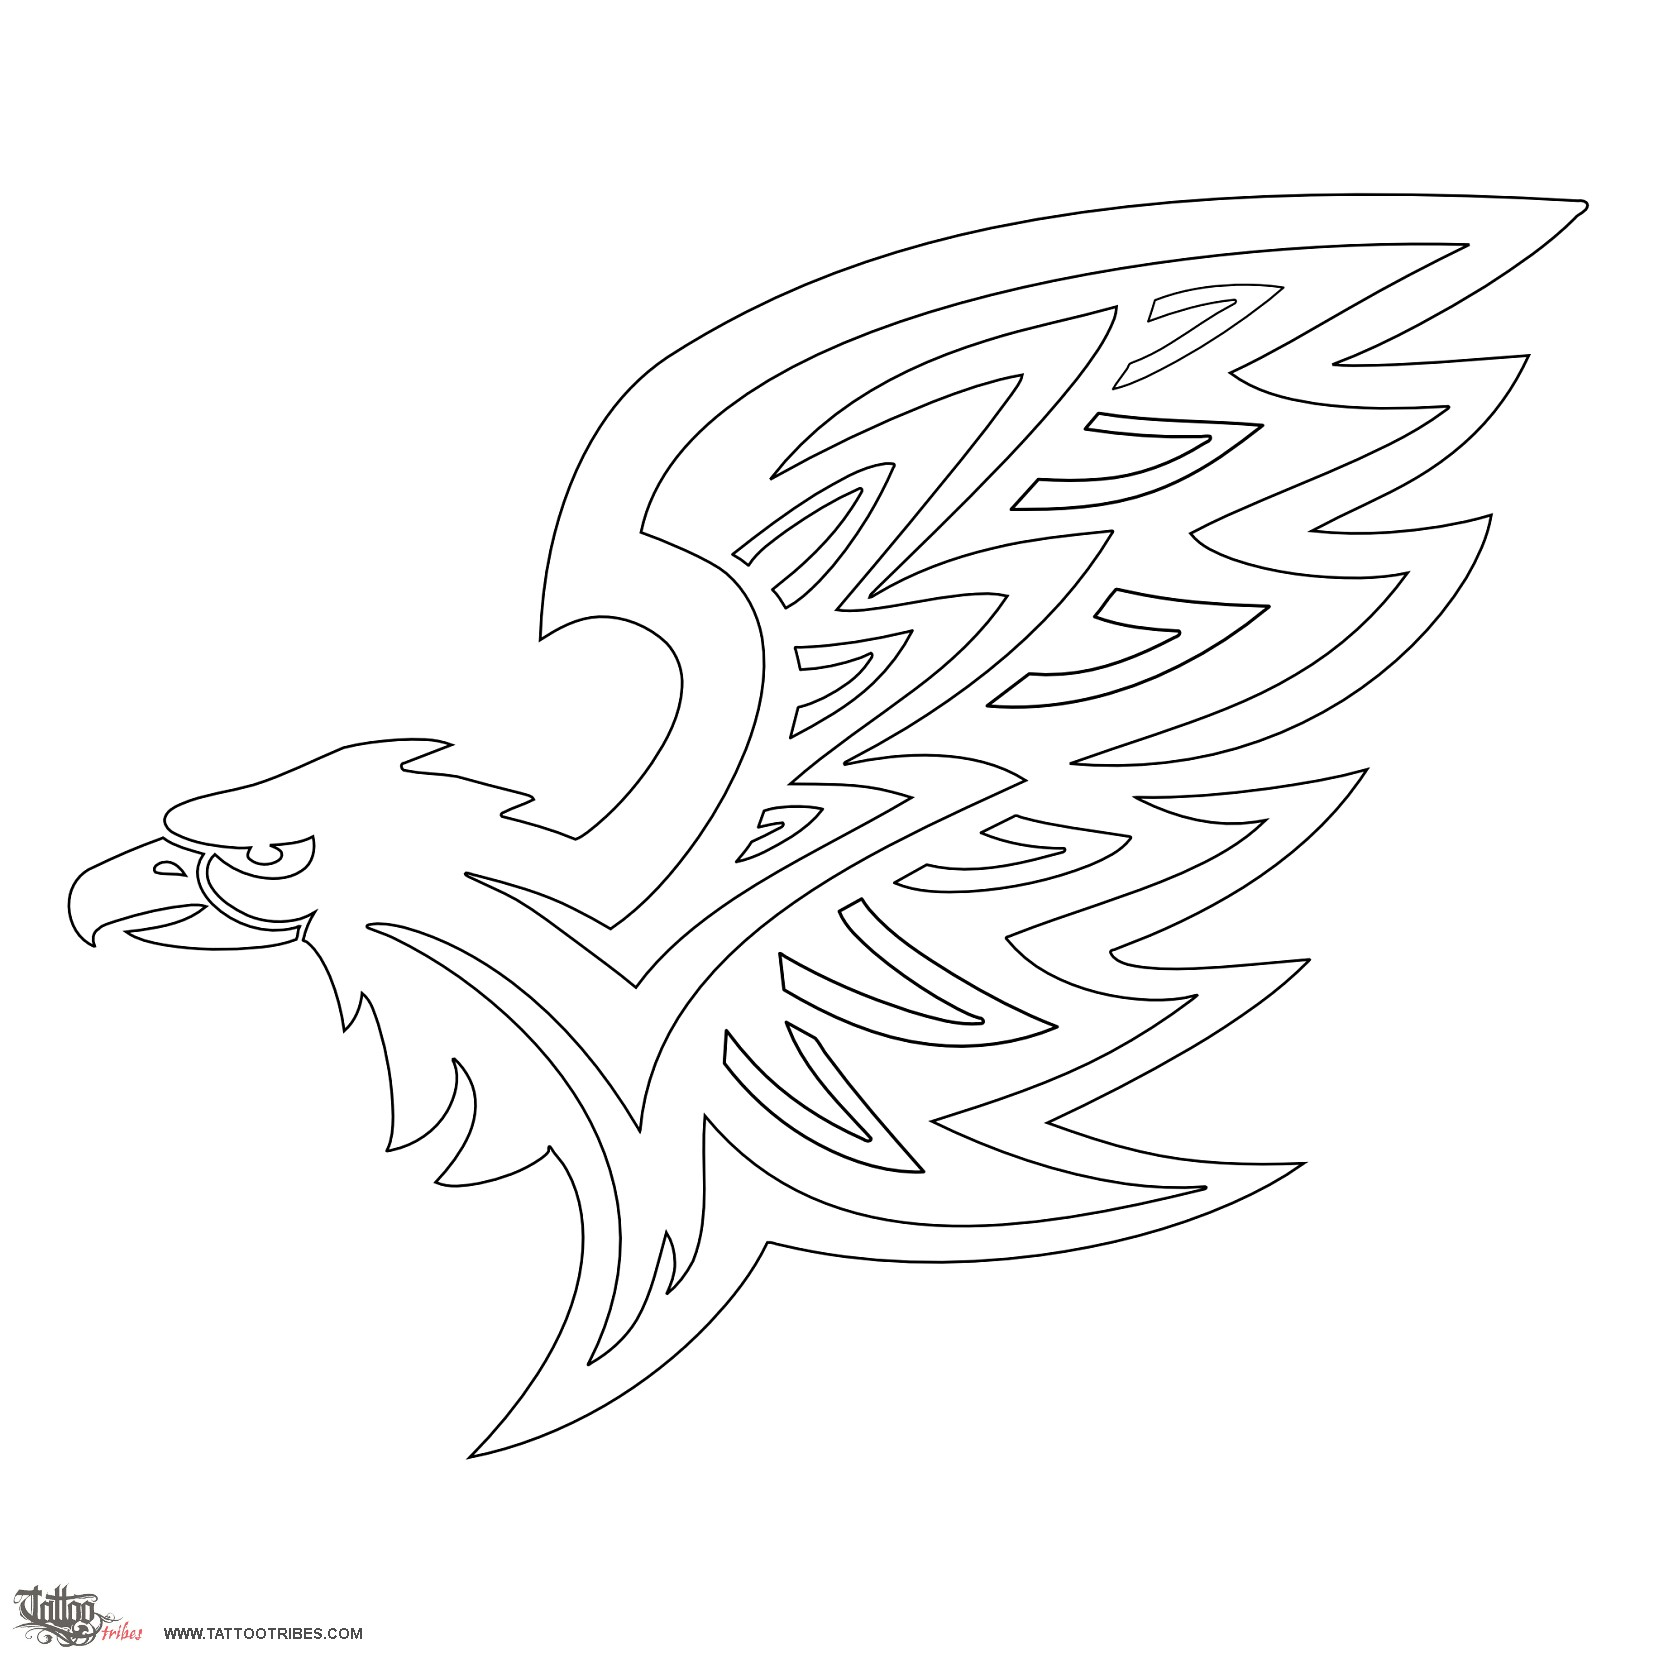 Images of Printable Eagle Stencil - #rock-cafe